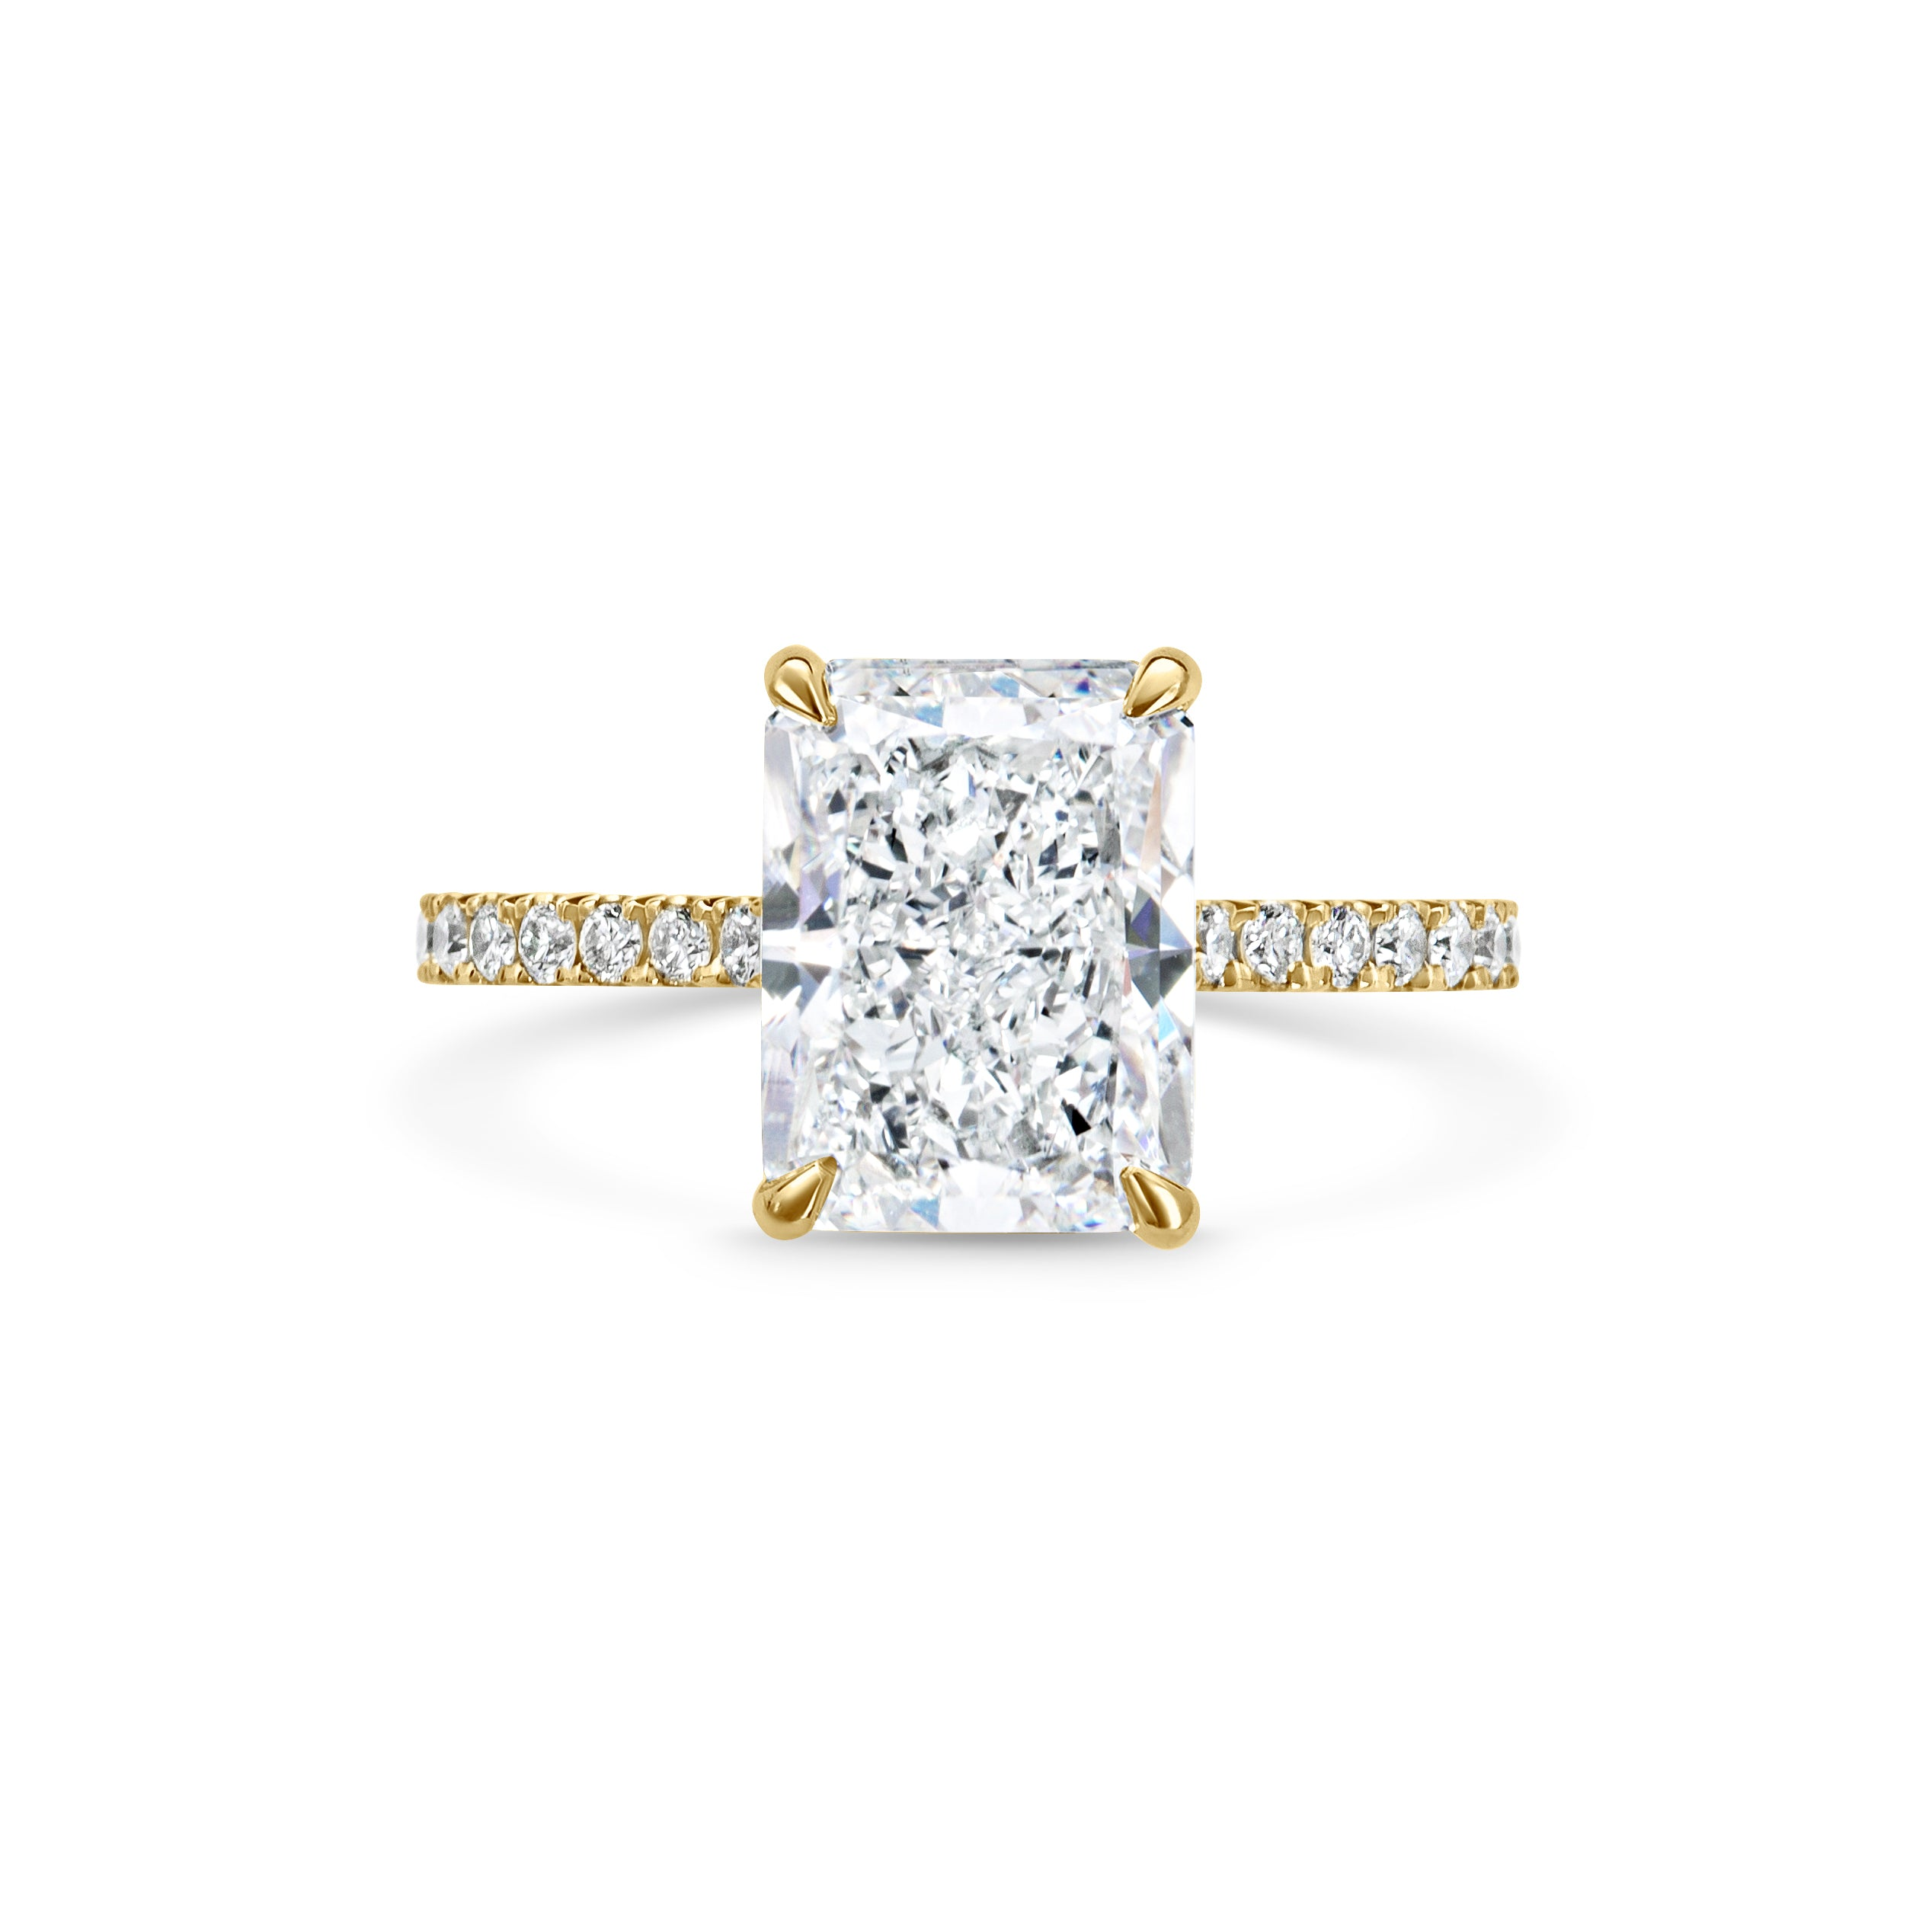 LOULOU radiant cut yellow gold